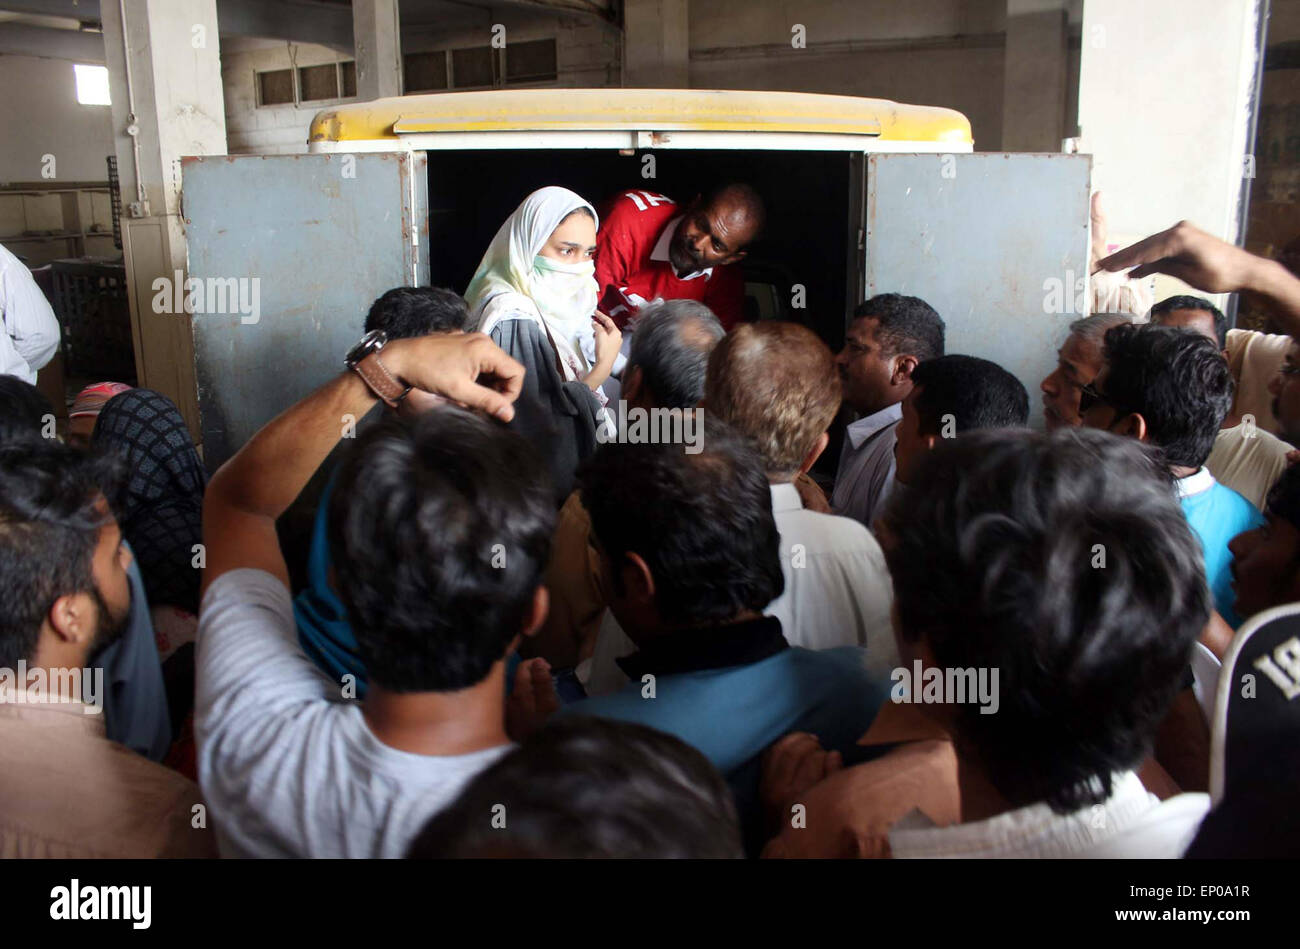 Rescue officials shift dead body of Former Muttahida Qaumi Movement (MQM) activist Saulat Mirza in an ambulance to an Edhi cold storage who was hanged at Mach prison on Tuesday in triple murder case was stated to be calm and composed at gallows, at Jinnah International Airport in Karachi on Tuesday, May 12, 2015. Former Muttahida Qaumi Movement (MQM) activist Saulat Mirza was executed today morning at 4:30 AM, for the murder of former KESC managing director Shahid Hamid, his driver and guard in 1997. Stock Photo